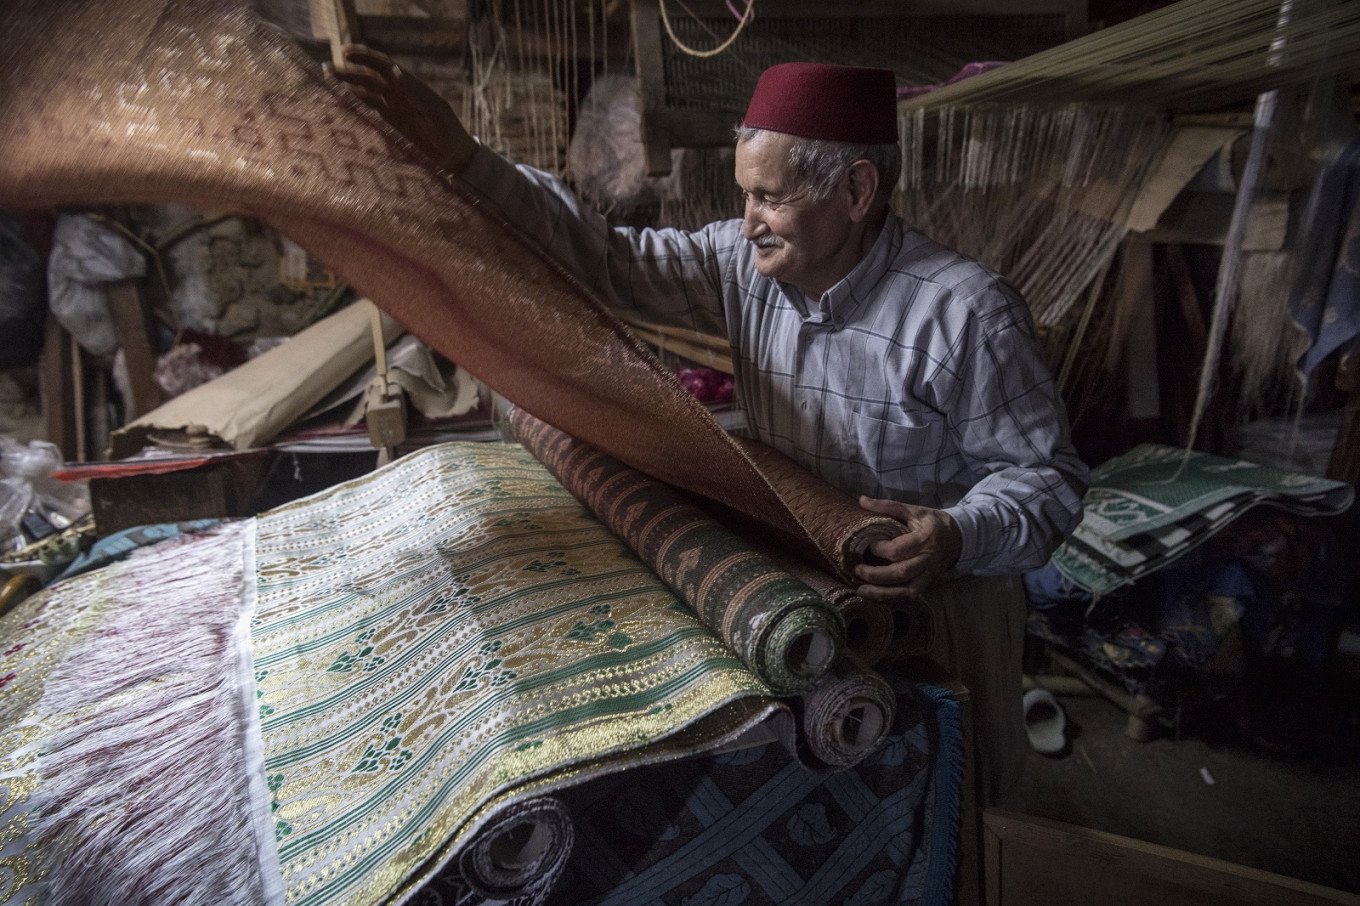 Historical threads: Morocco's last brocade master